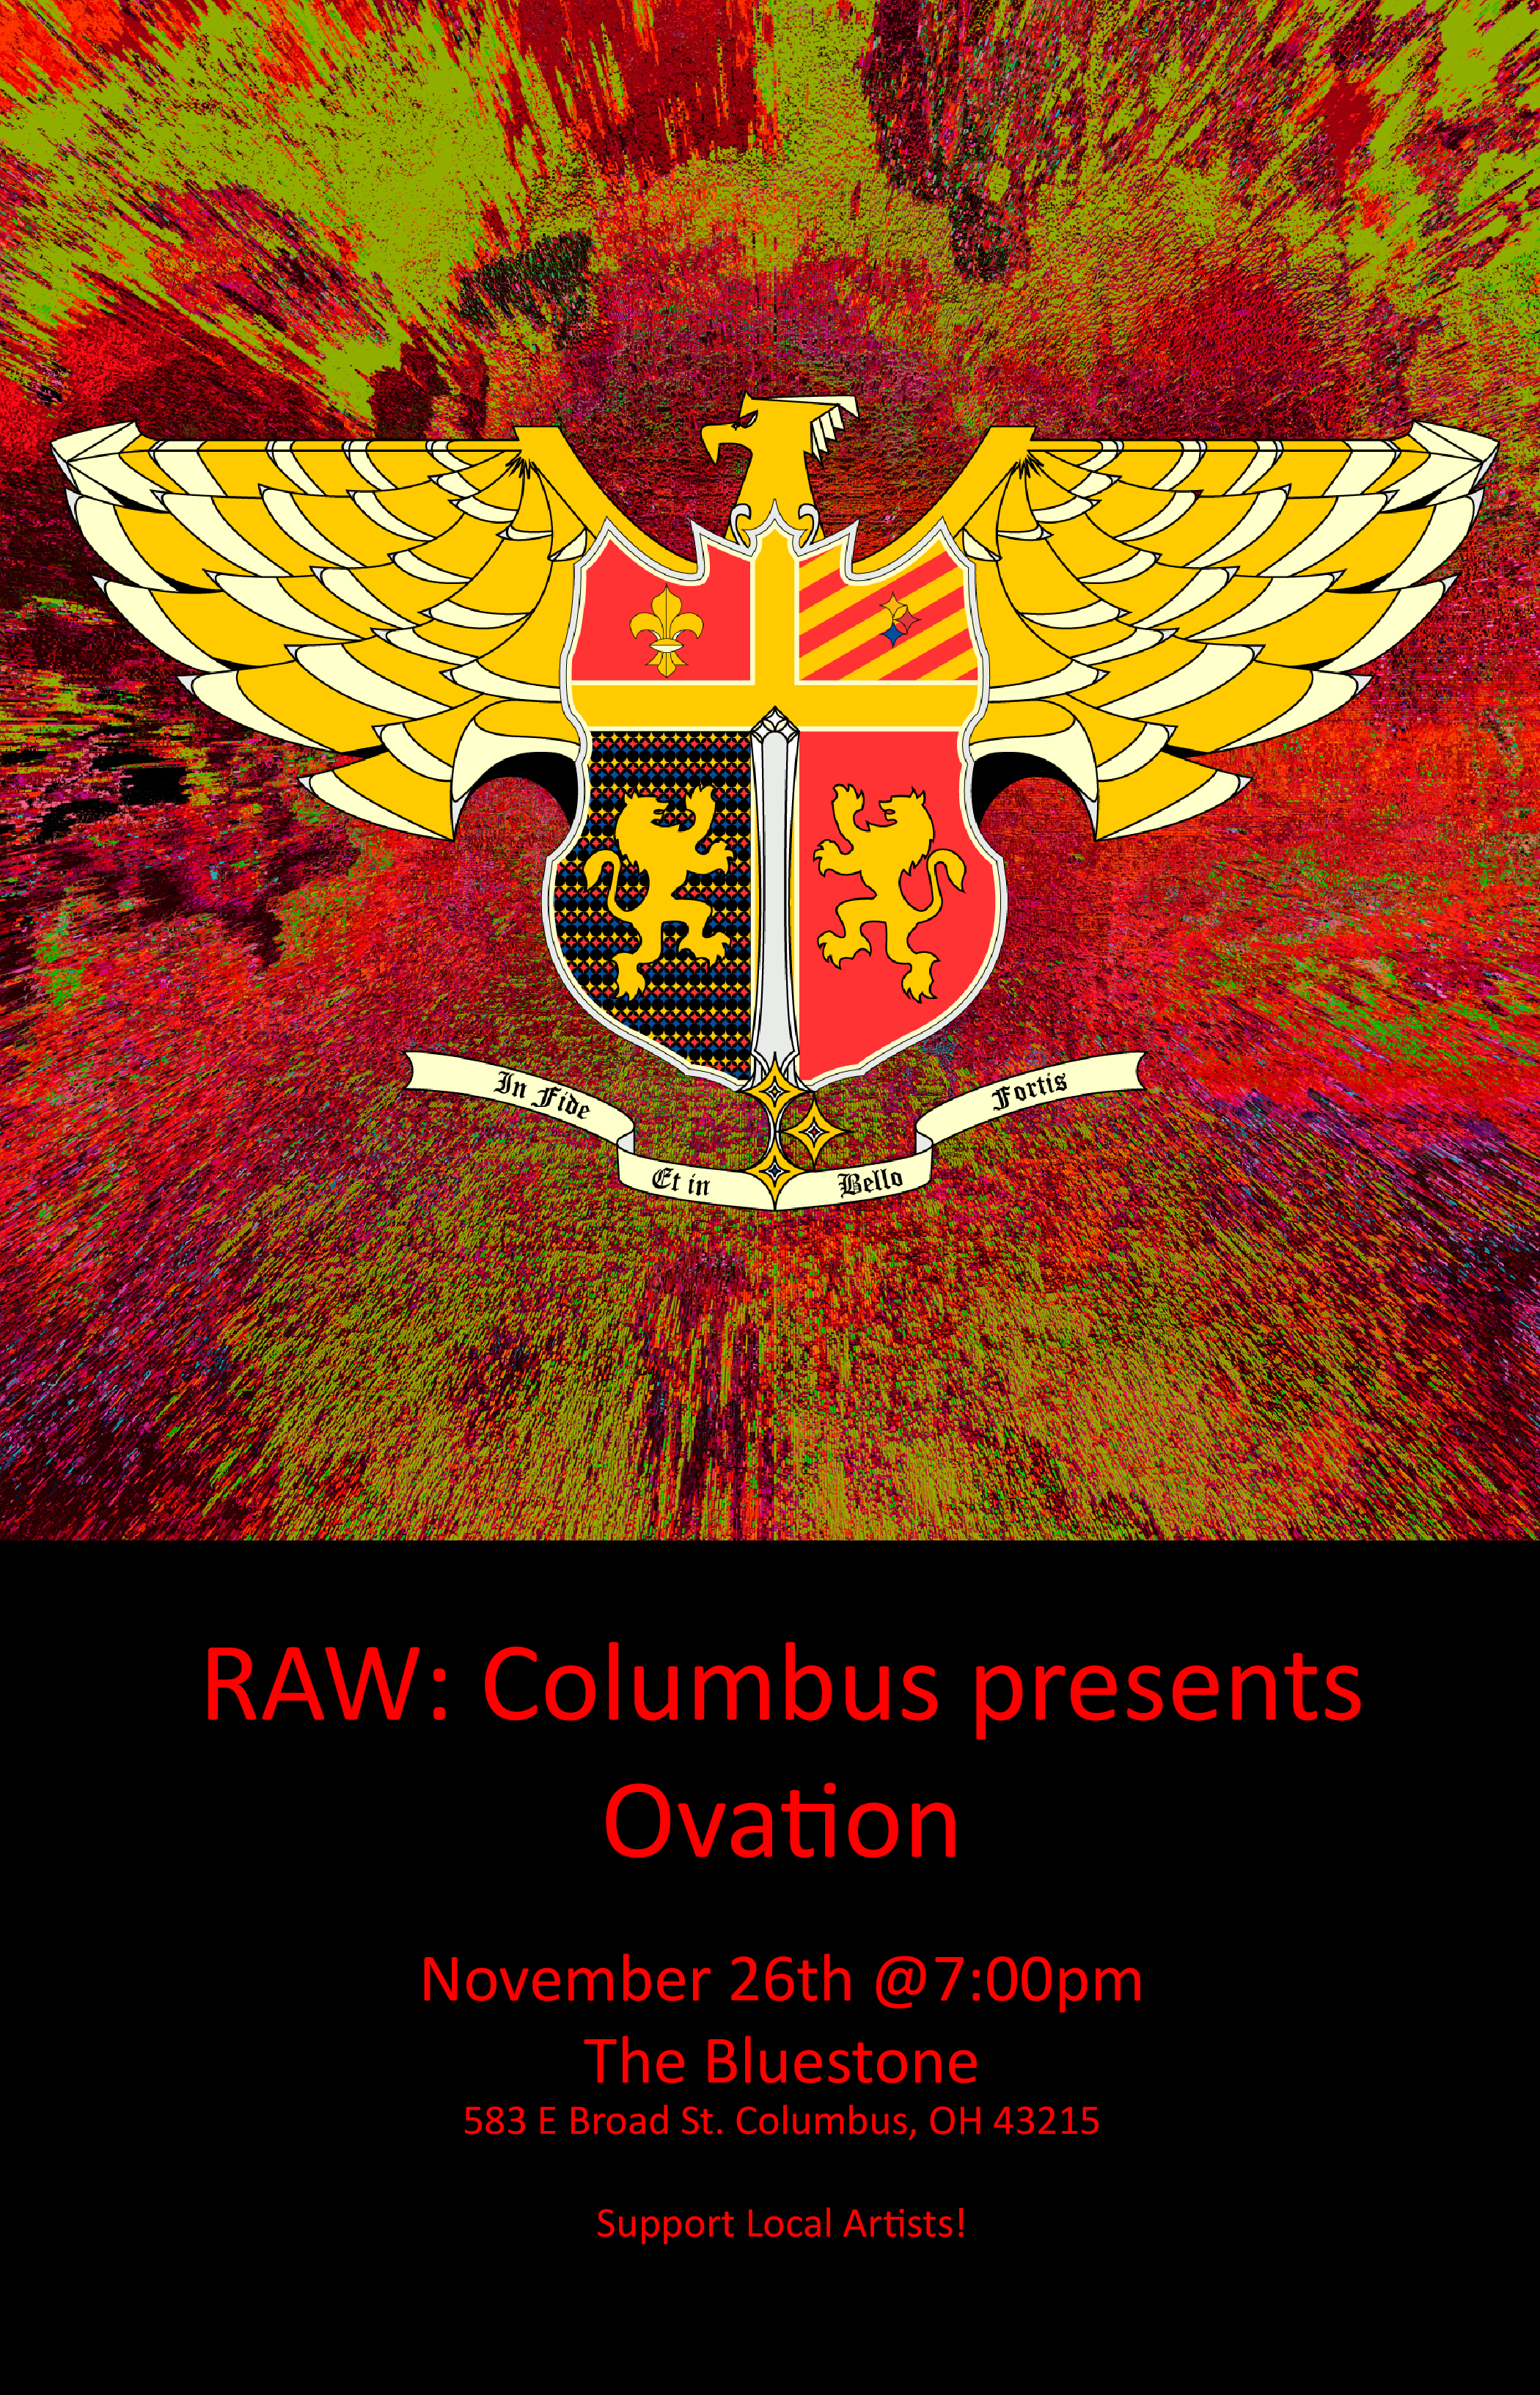 RAW: Columbus presents Ovation - November 26th @7pm Columbus, OH